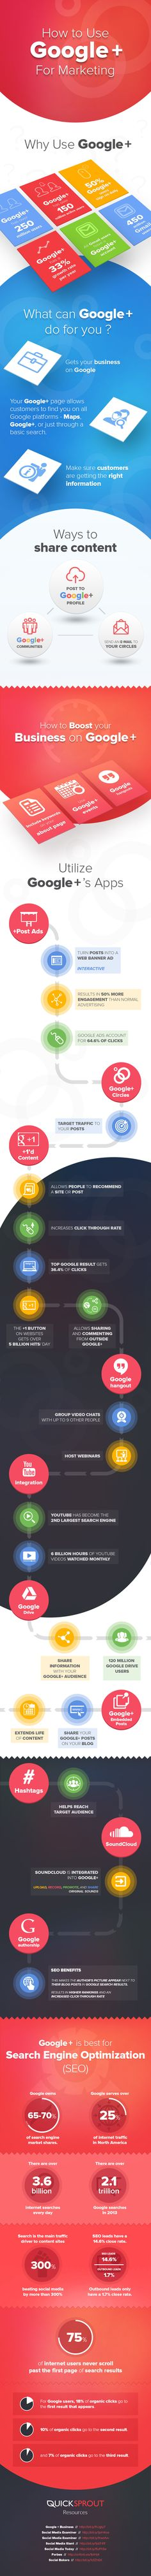 How To Incorporate Google Plus Into Your Social Media Marketing Strategy